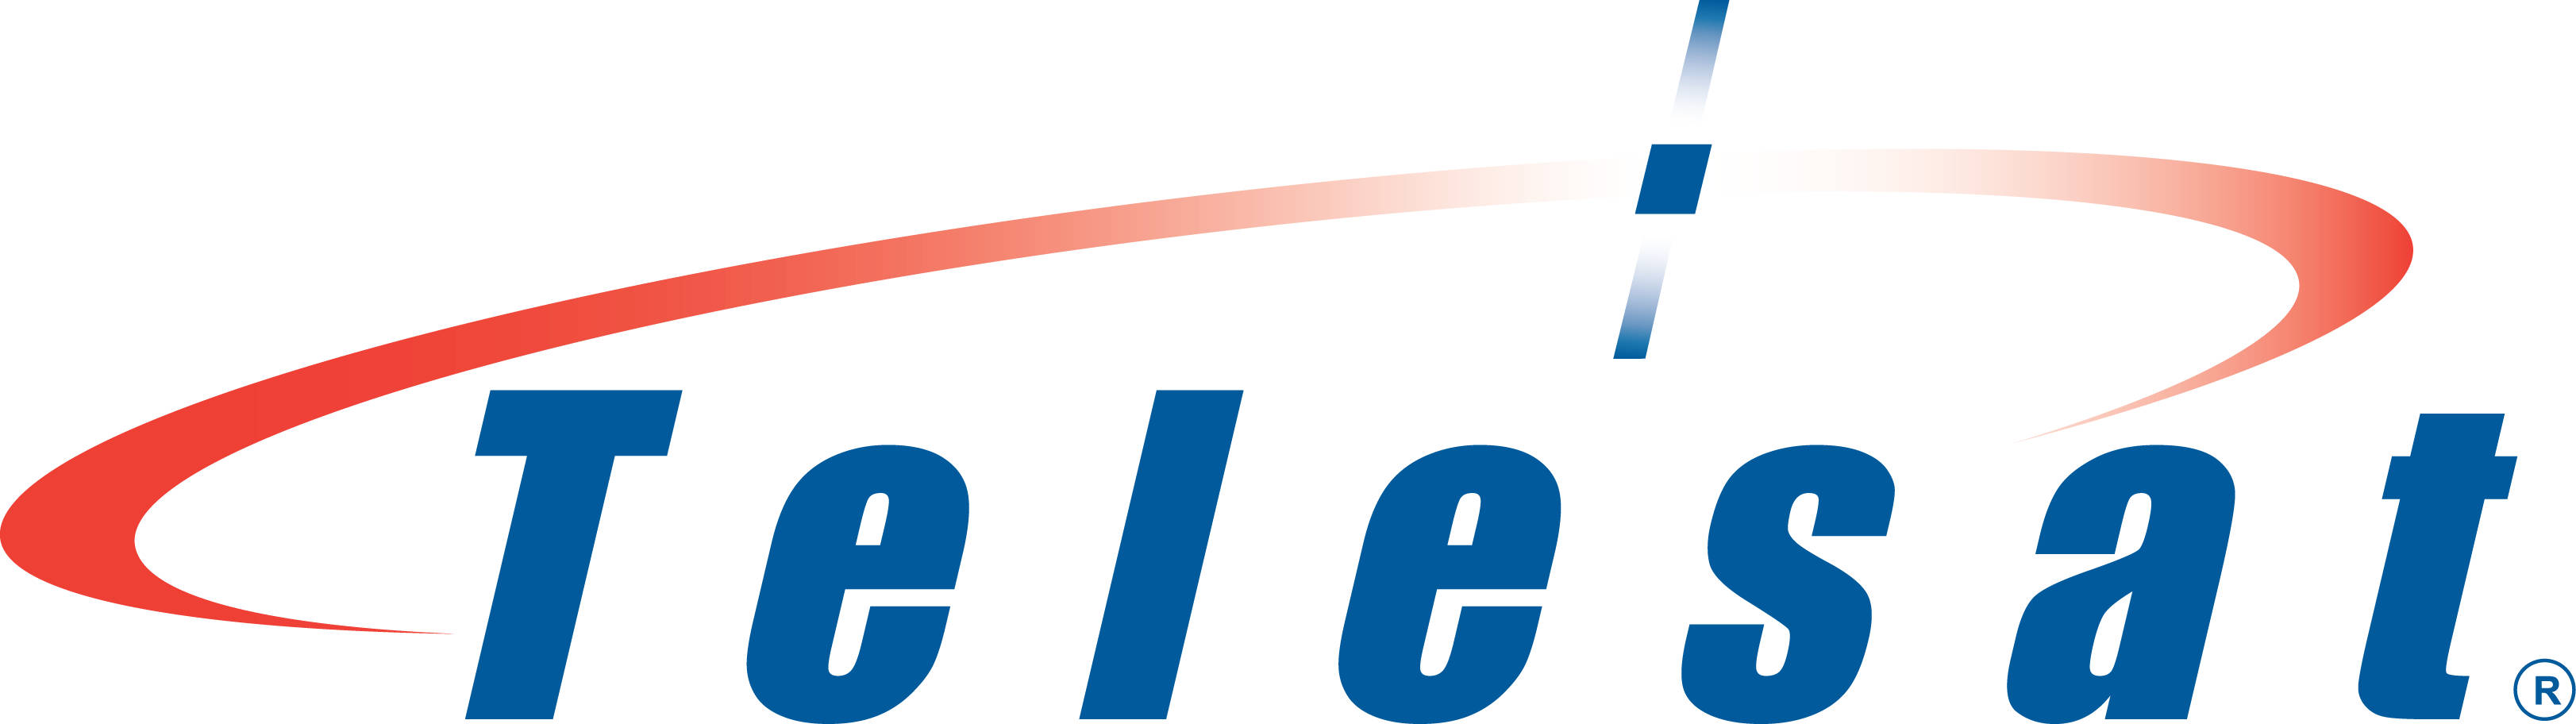 Telesat Canada Announces Proposed Amendment to Existing Credit Agreement and Proposed Secured Notes Offering